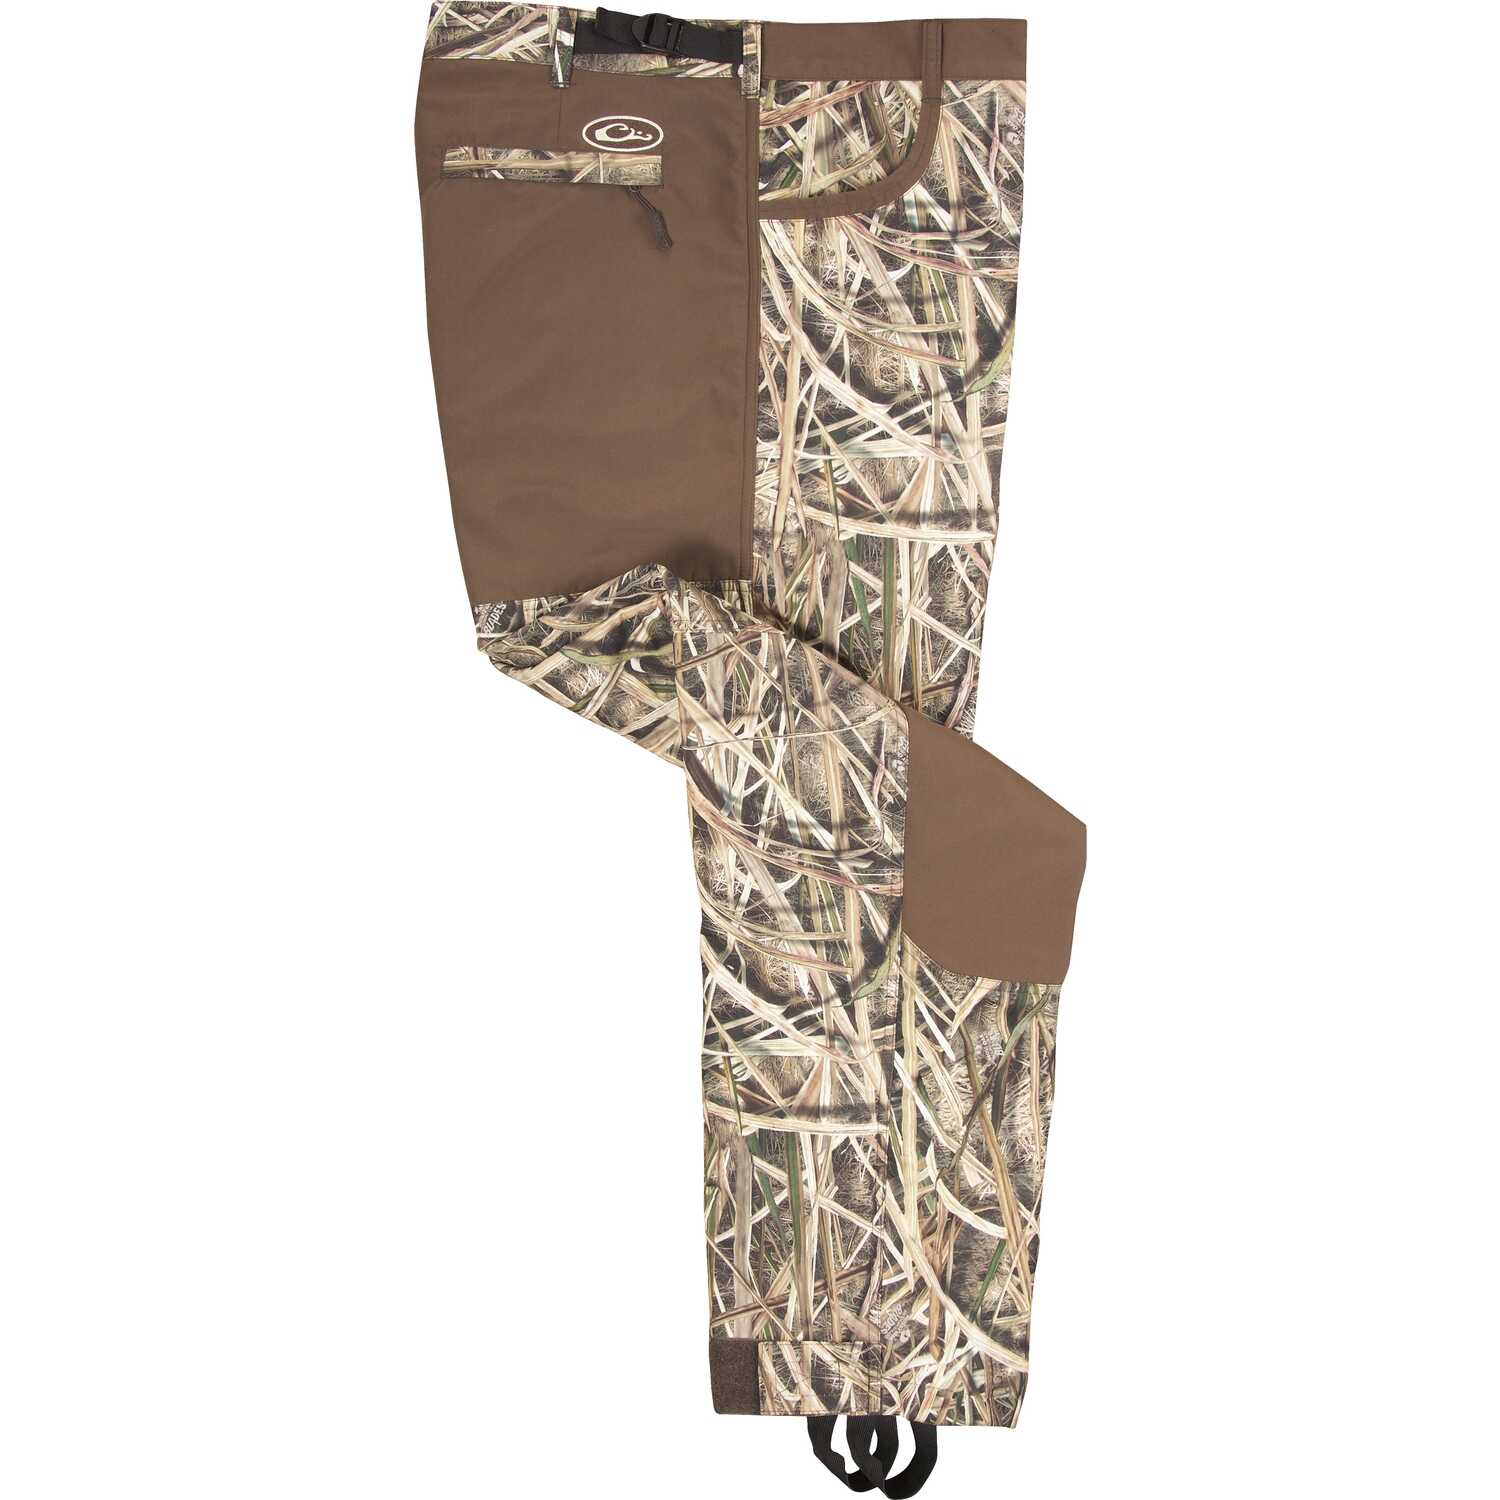 Drake  Endurance  XX-Large  Men's  Realtree Edge  Jean Cut Pants